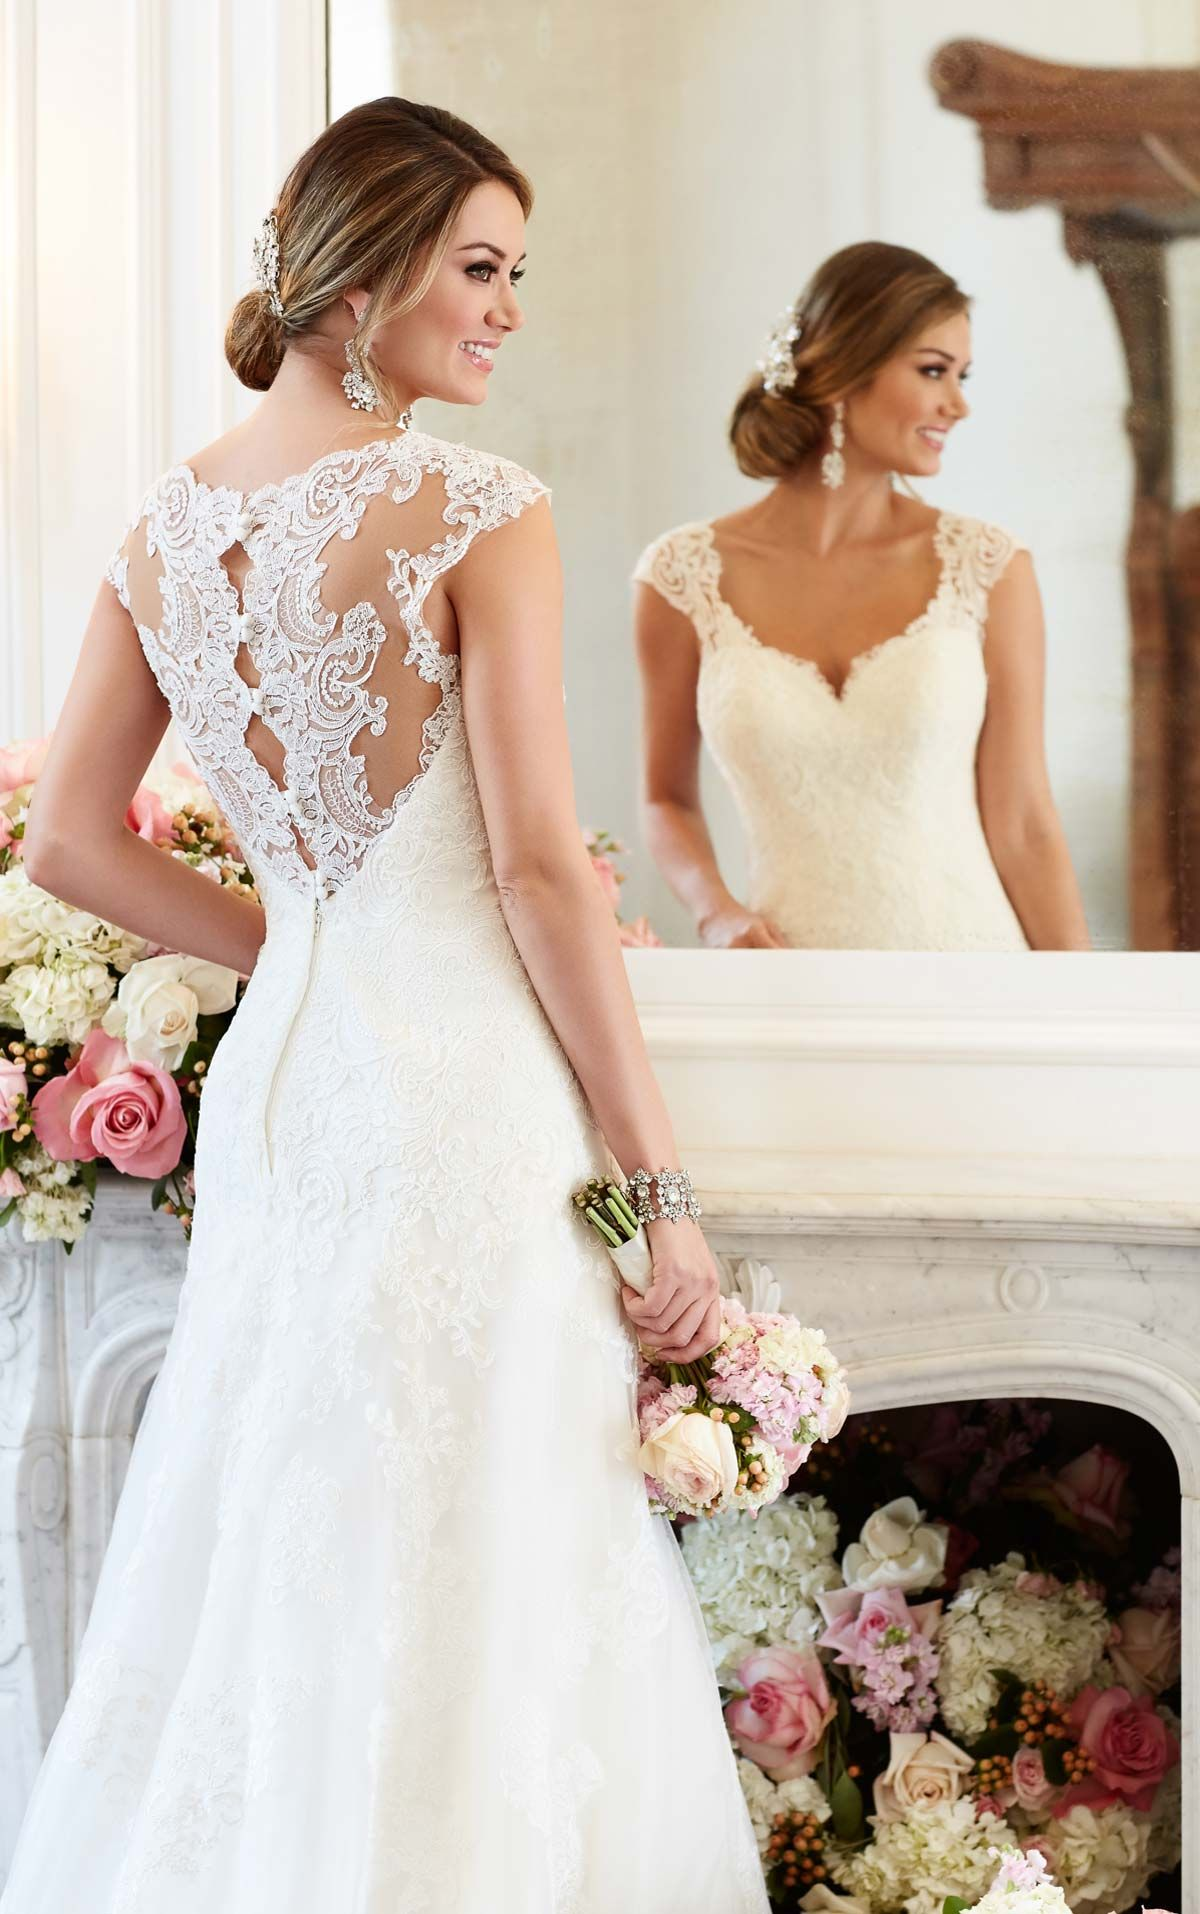 Lace cap sleeve a line wedding dress  ALine Sweetheart Wedding Dress  Stella york Illusions and Romantic